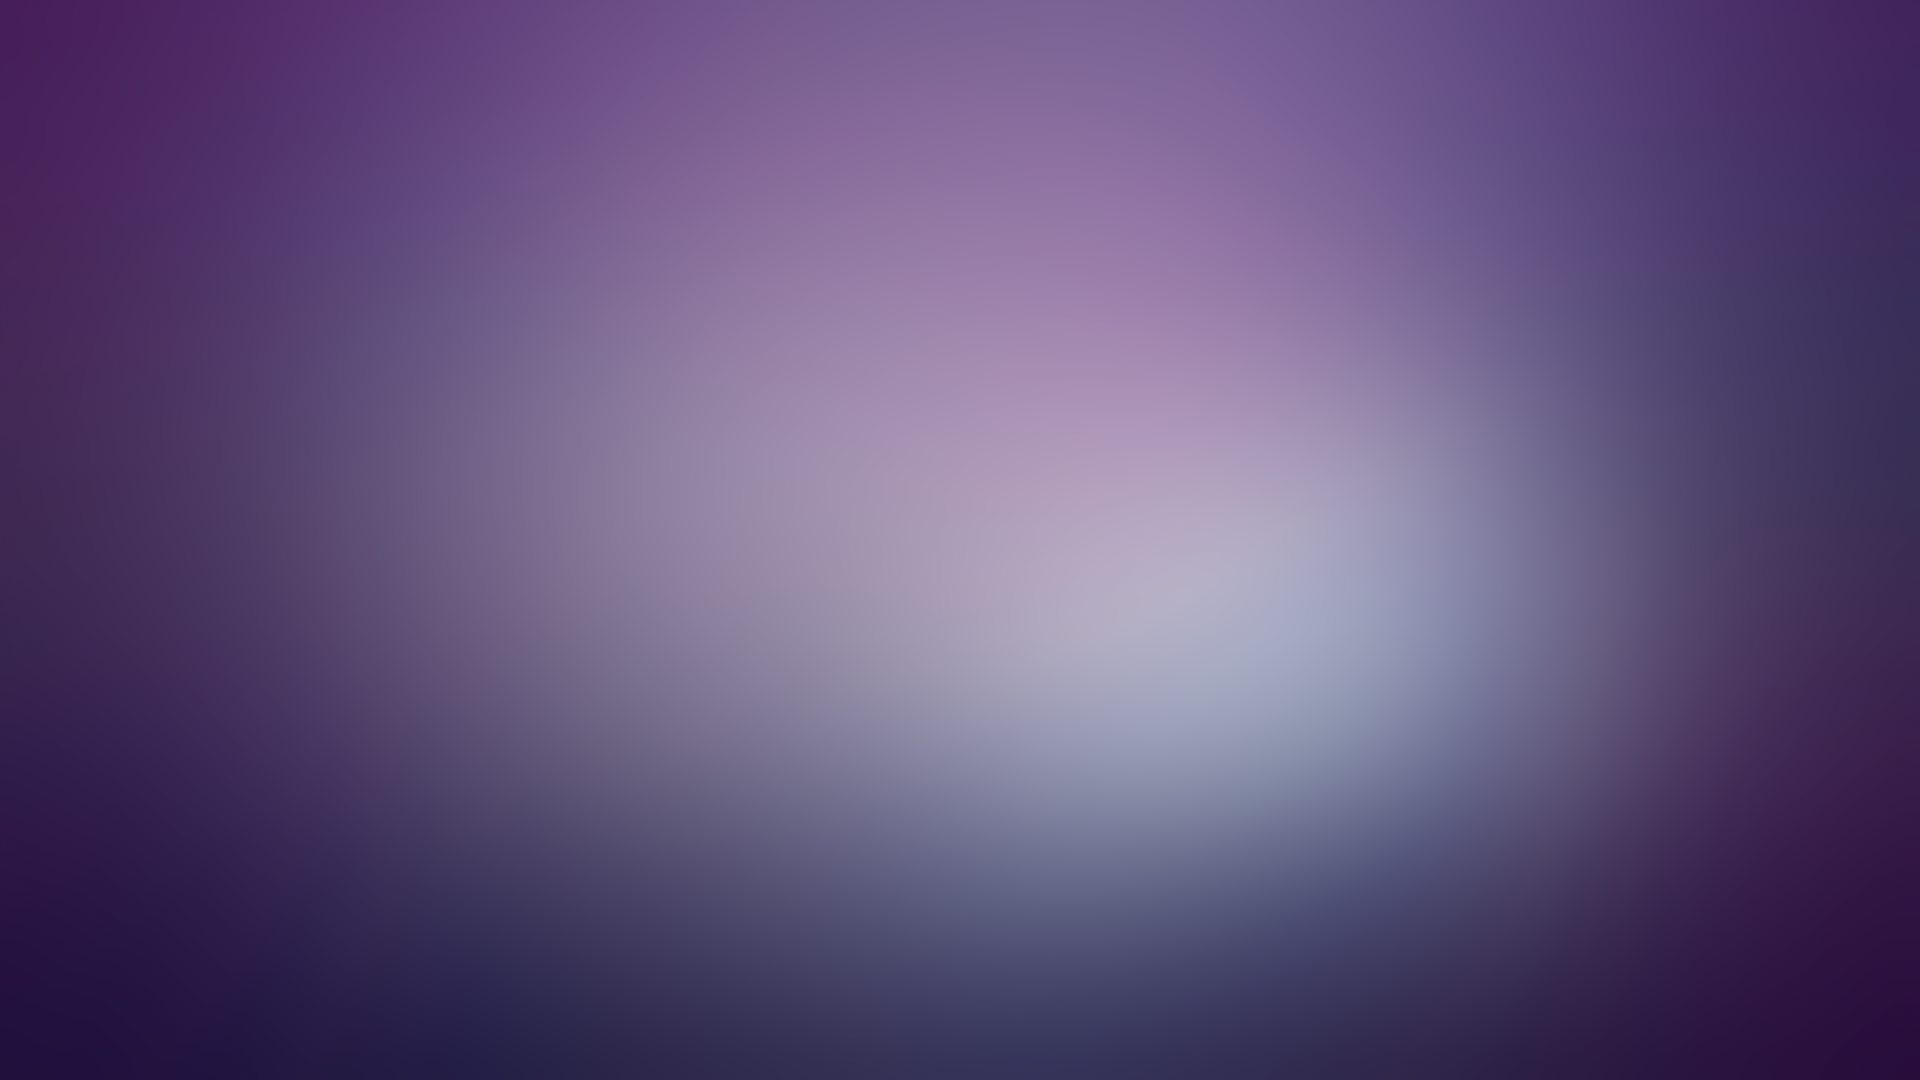 clean blurred purple background wallpapers 43510 1920x1080